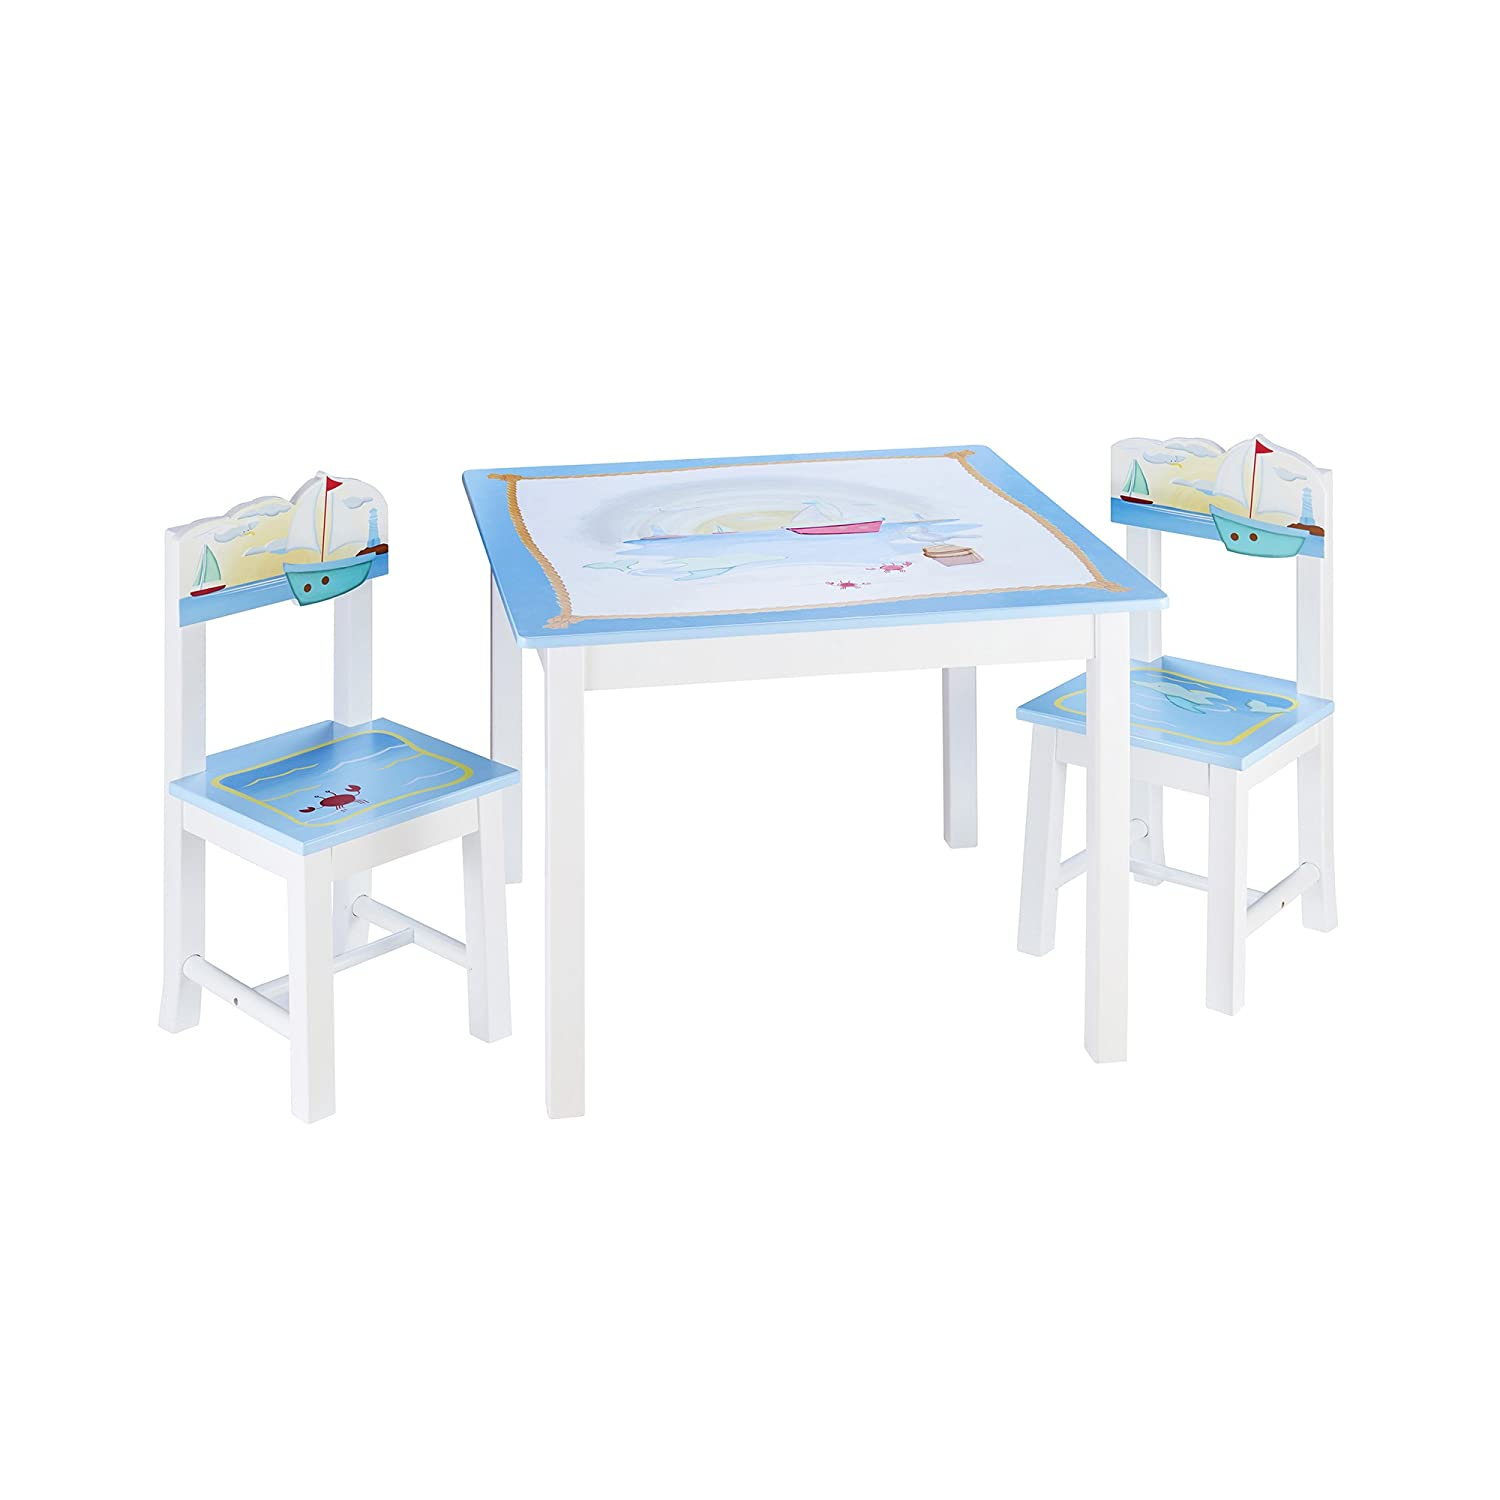 Amazoncom Guidecraft Wood Hand Painted Sailing Table & Chairs Set